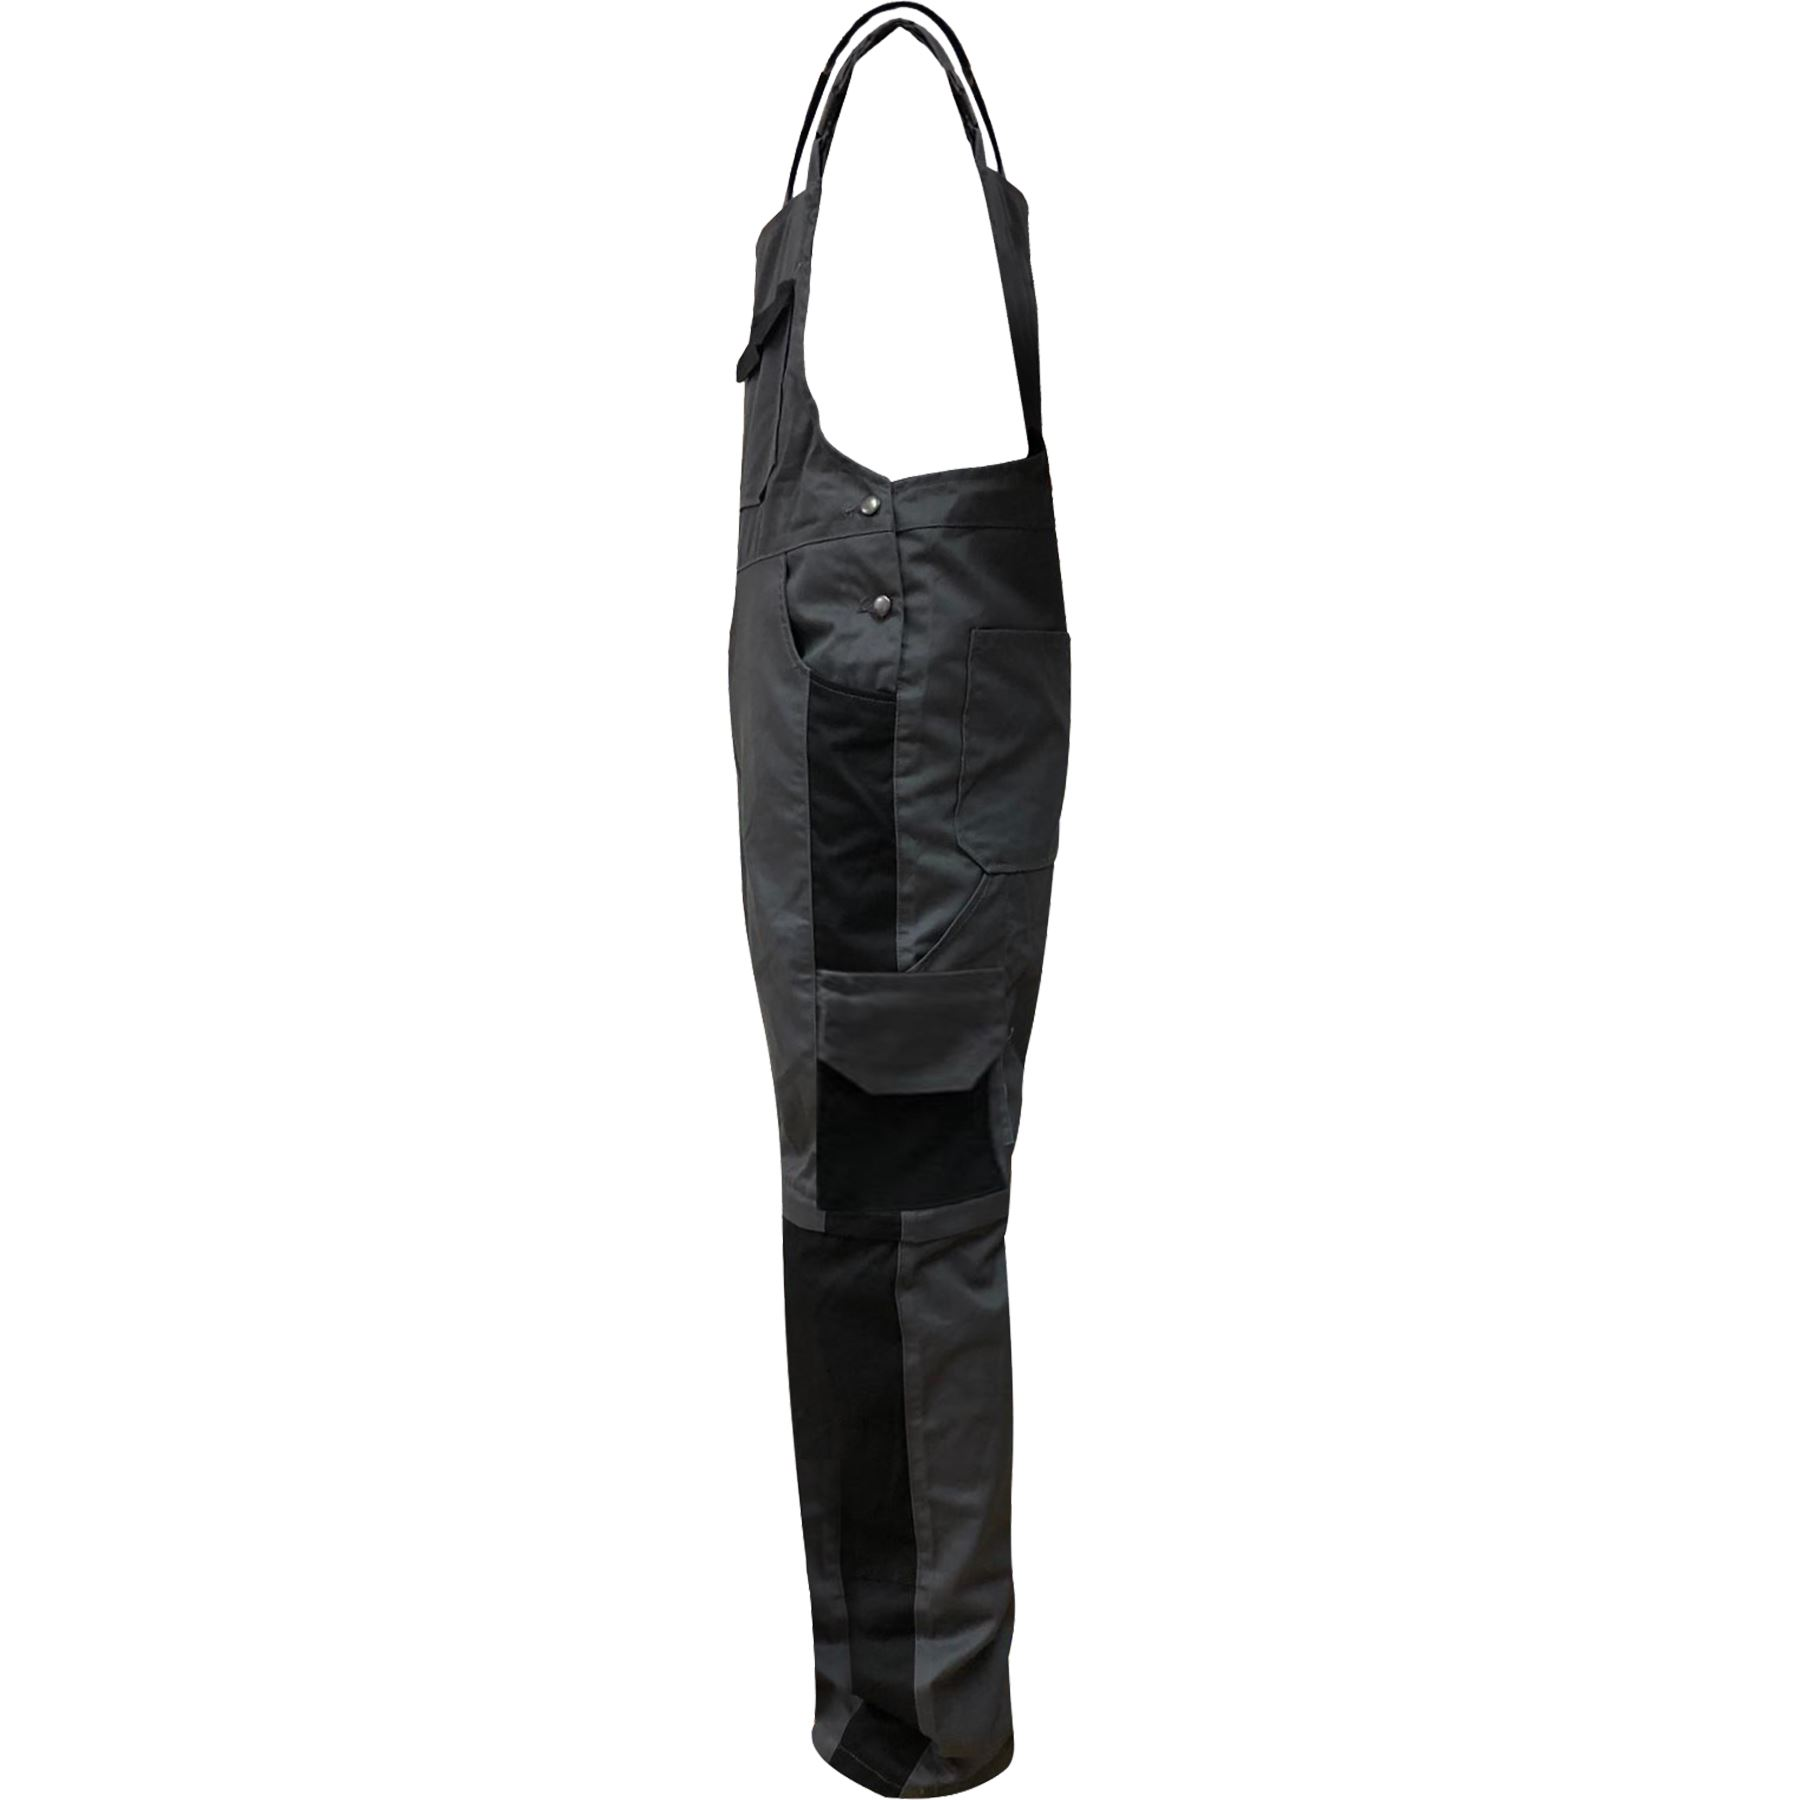 Mens Work Dungarees Bib and Brace Long Overalls Zip off to 3//4 Multi Pockets